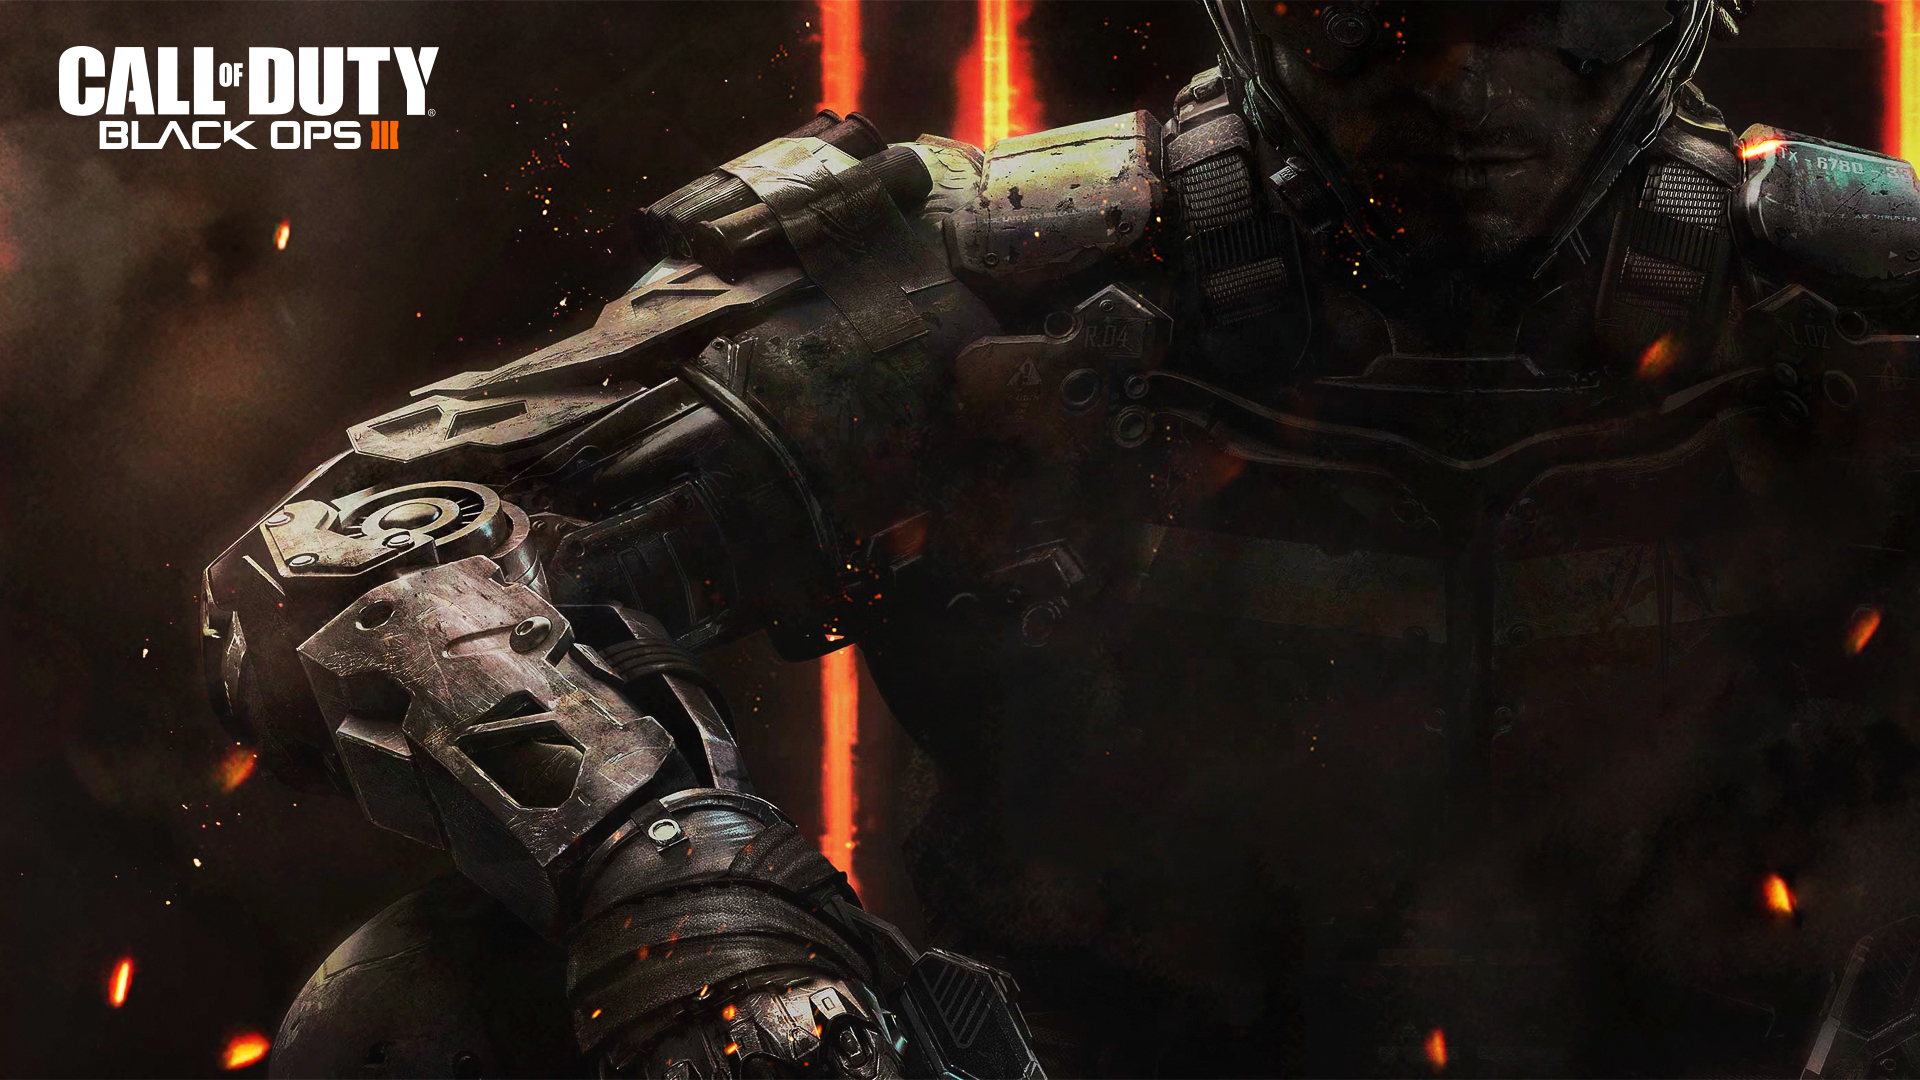 Black Ops 3 Wallpapers BO3   Download   Unofficial Call of Duty 1920x1080